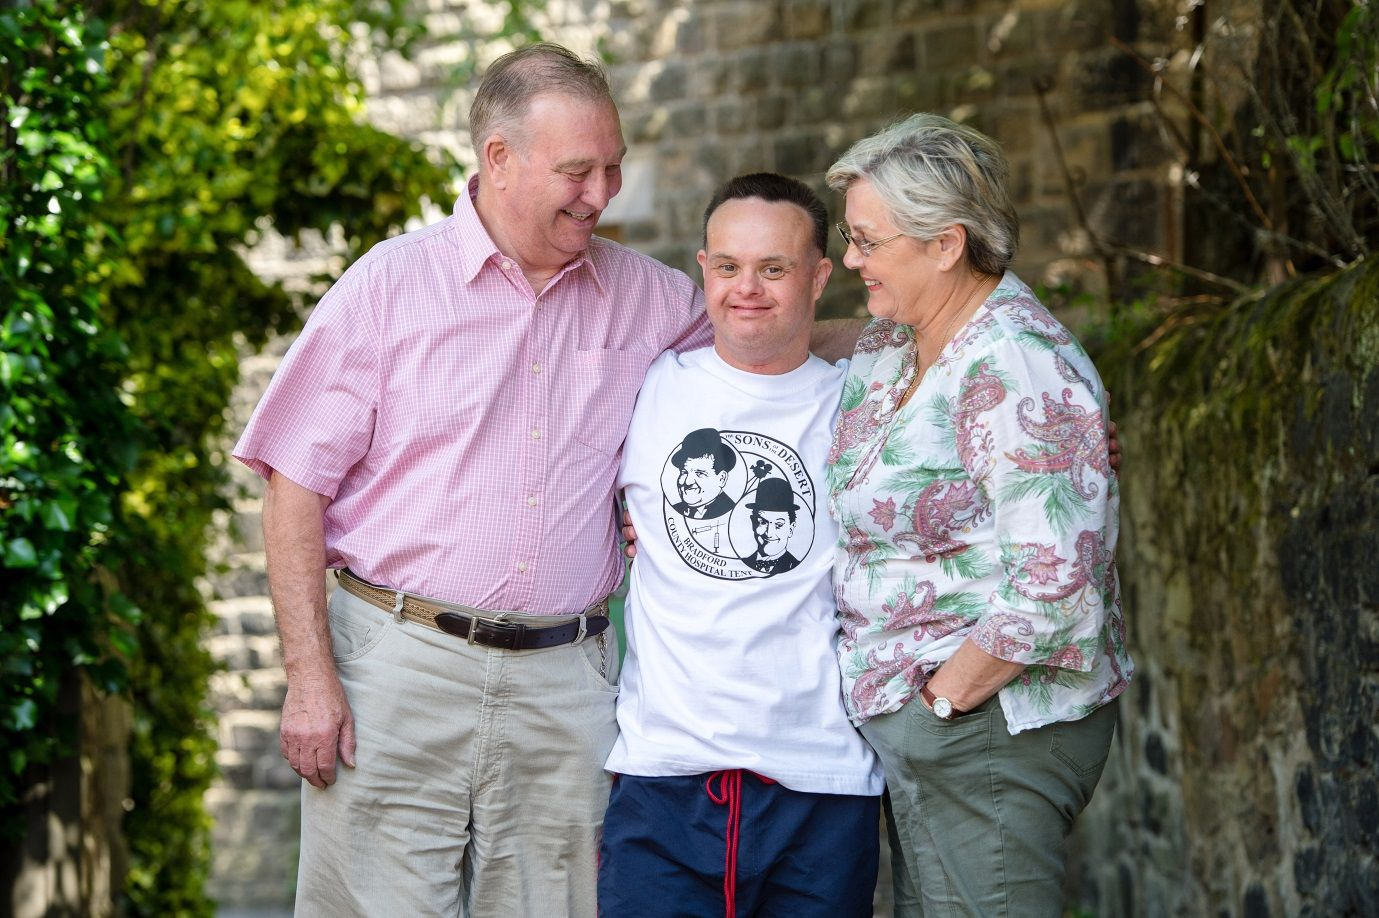 A young man and his parents smiling